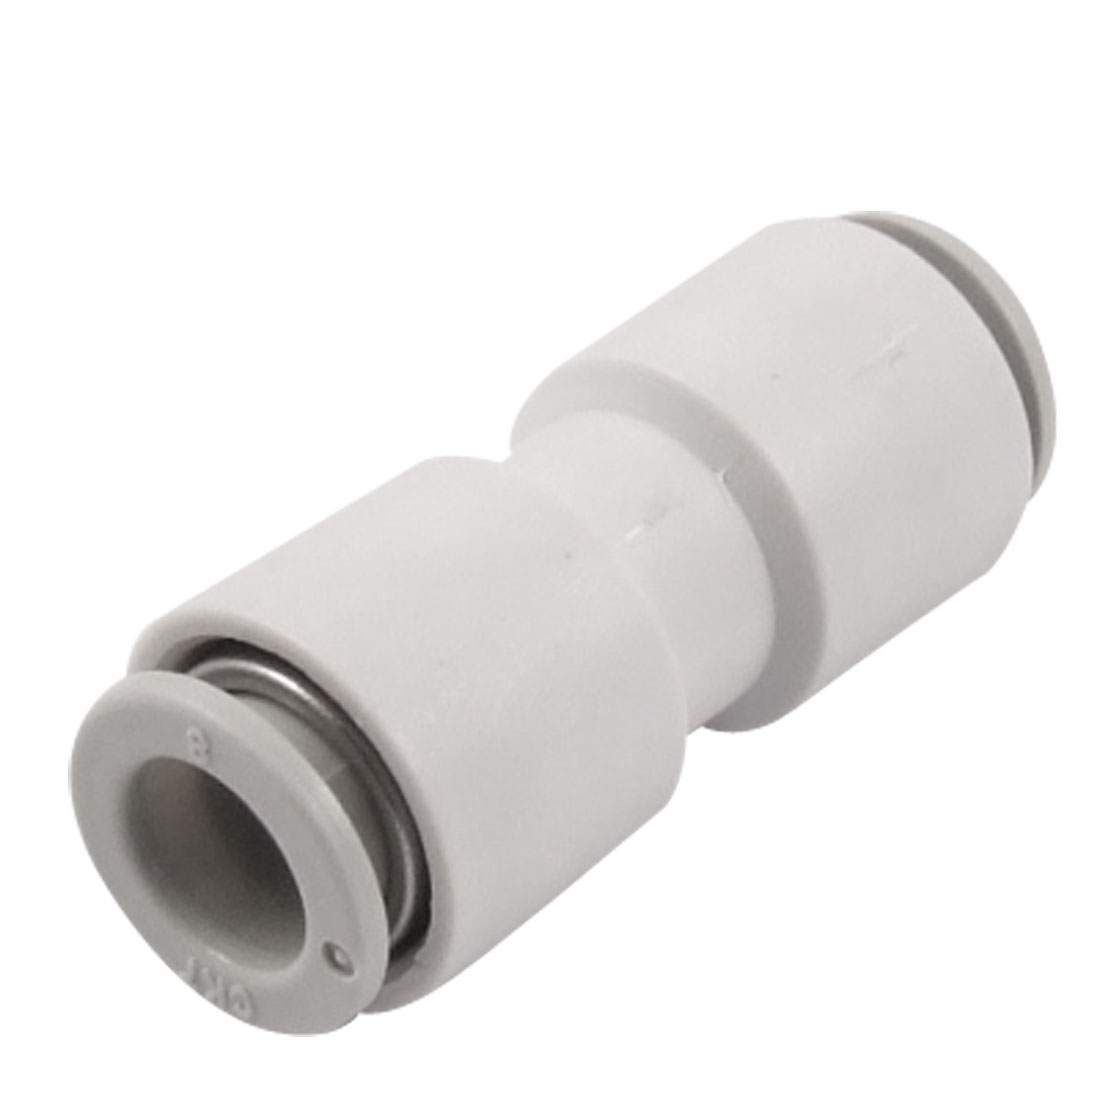 8mm-Air-Tube-Straight-Quick-Connector-One-Touch-Pneumatic-Push-In-Fitting